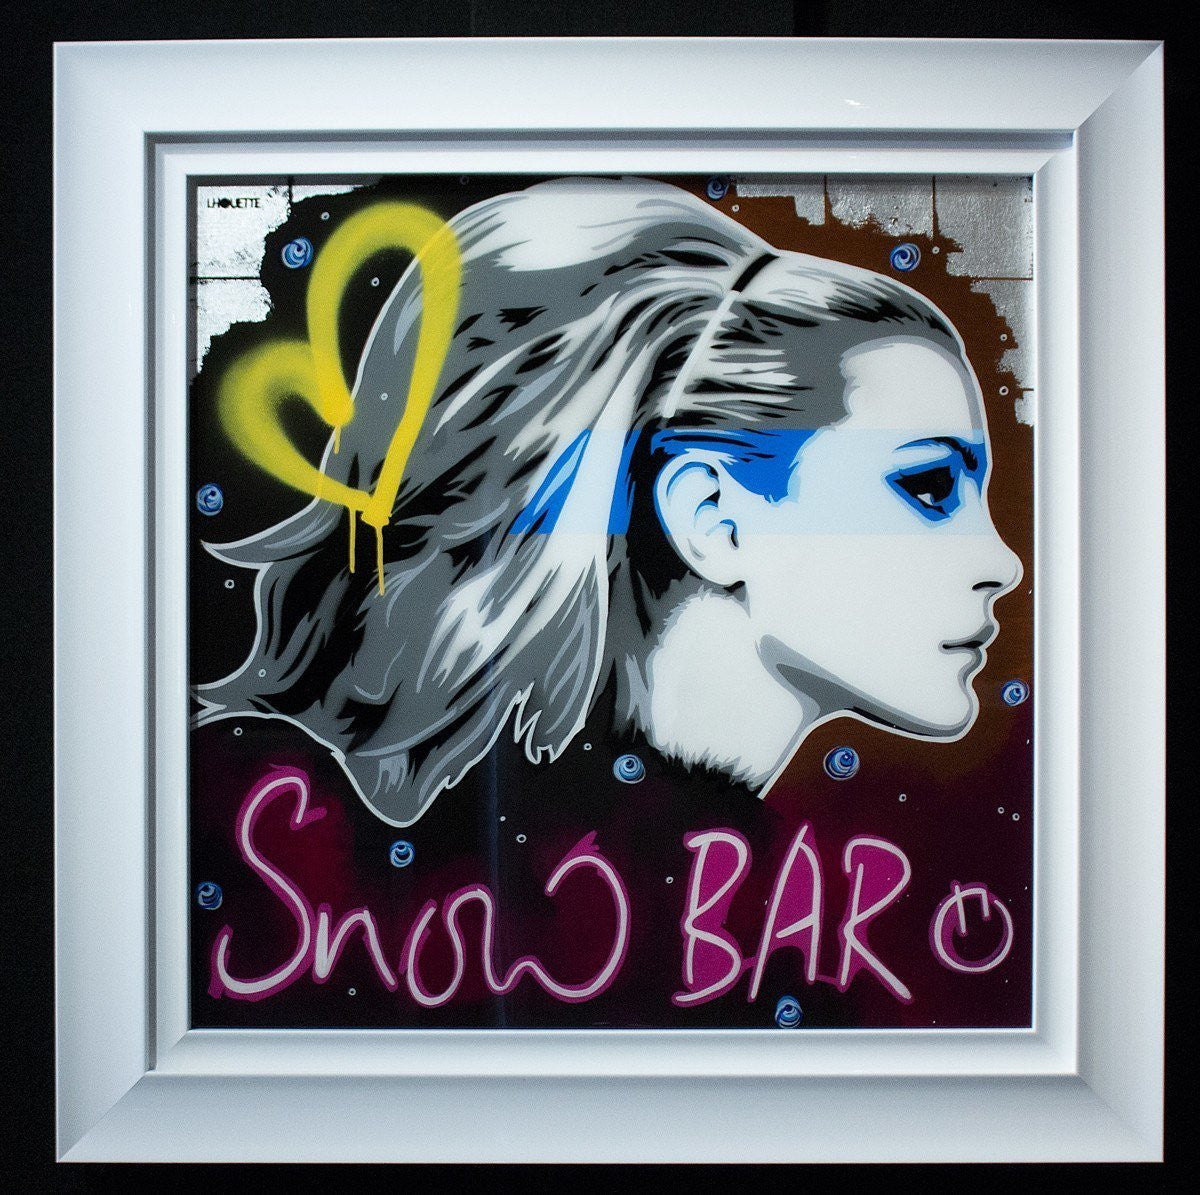 Snow Bar - SOLD Lhouette